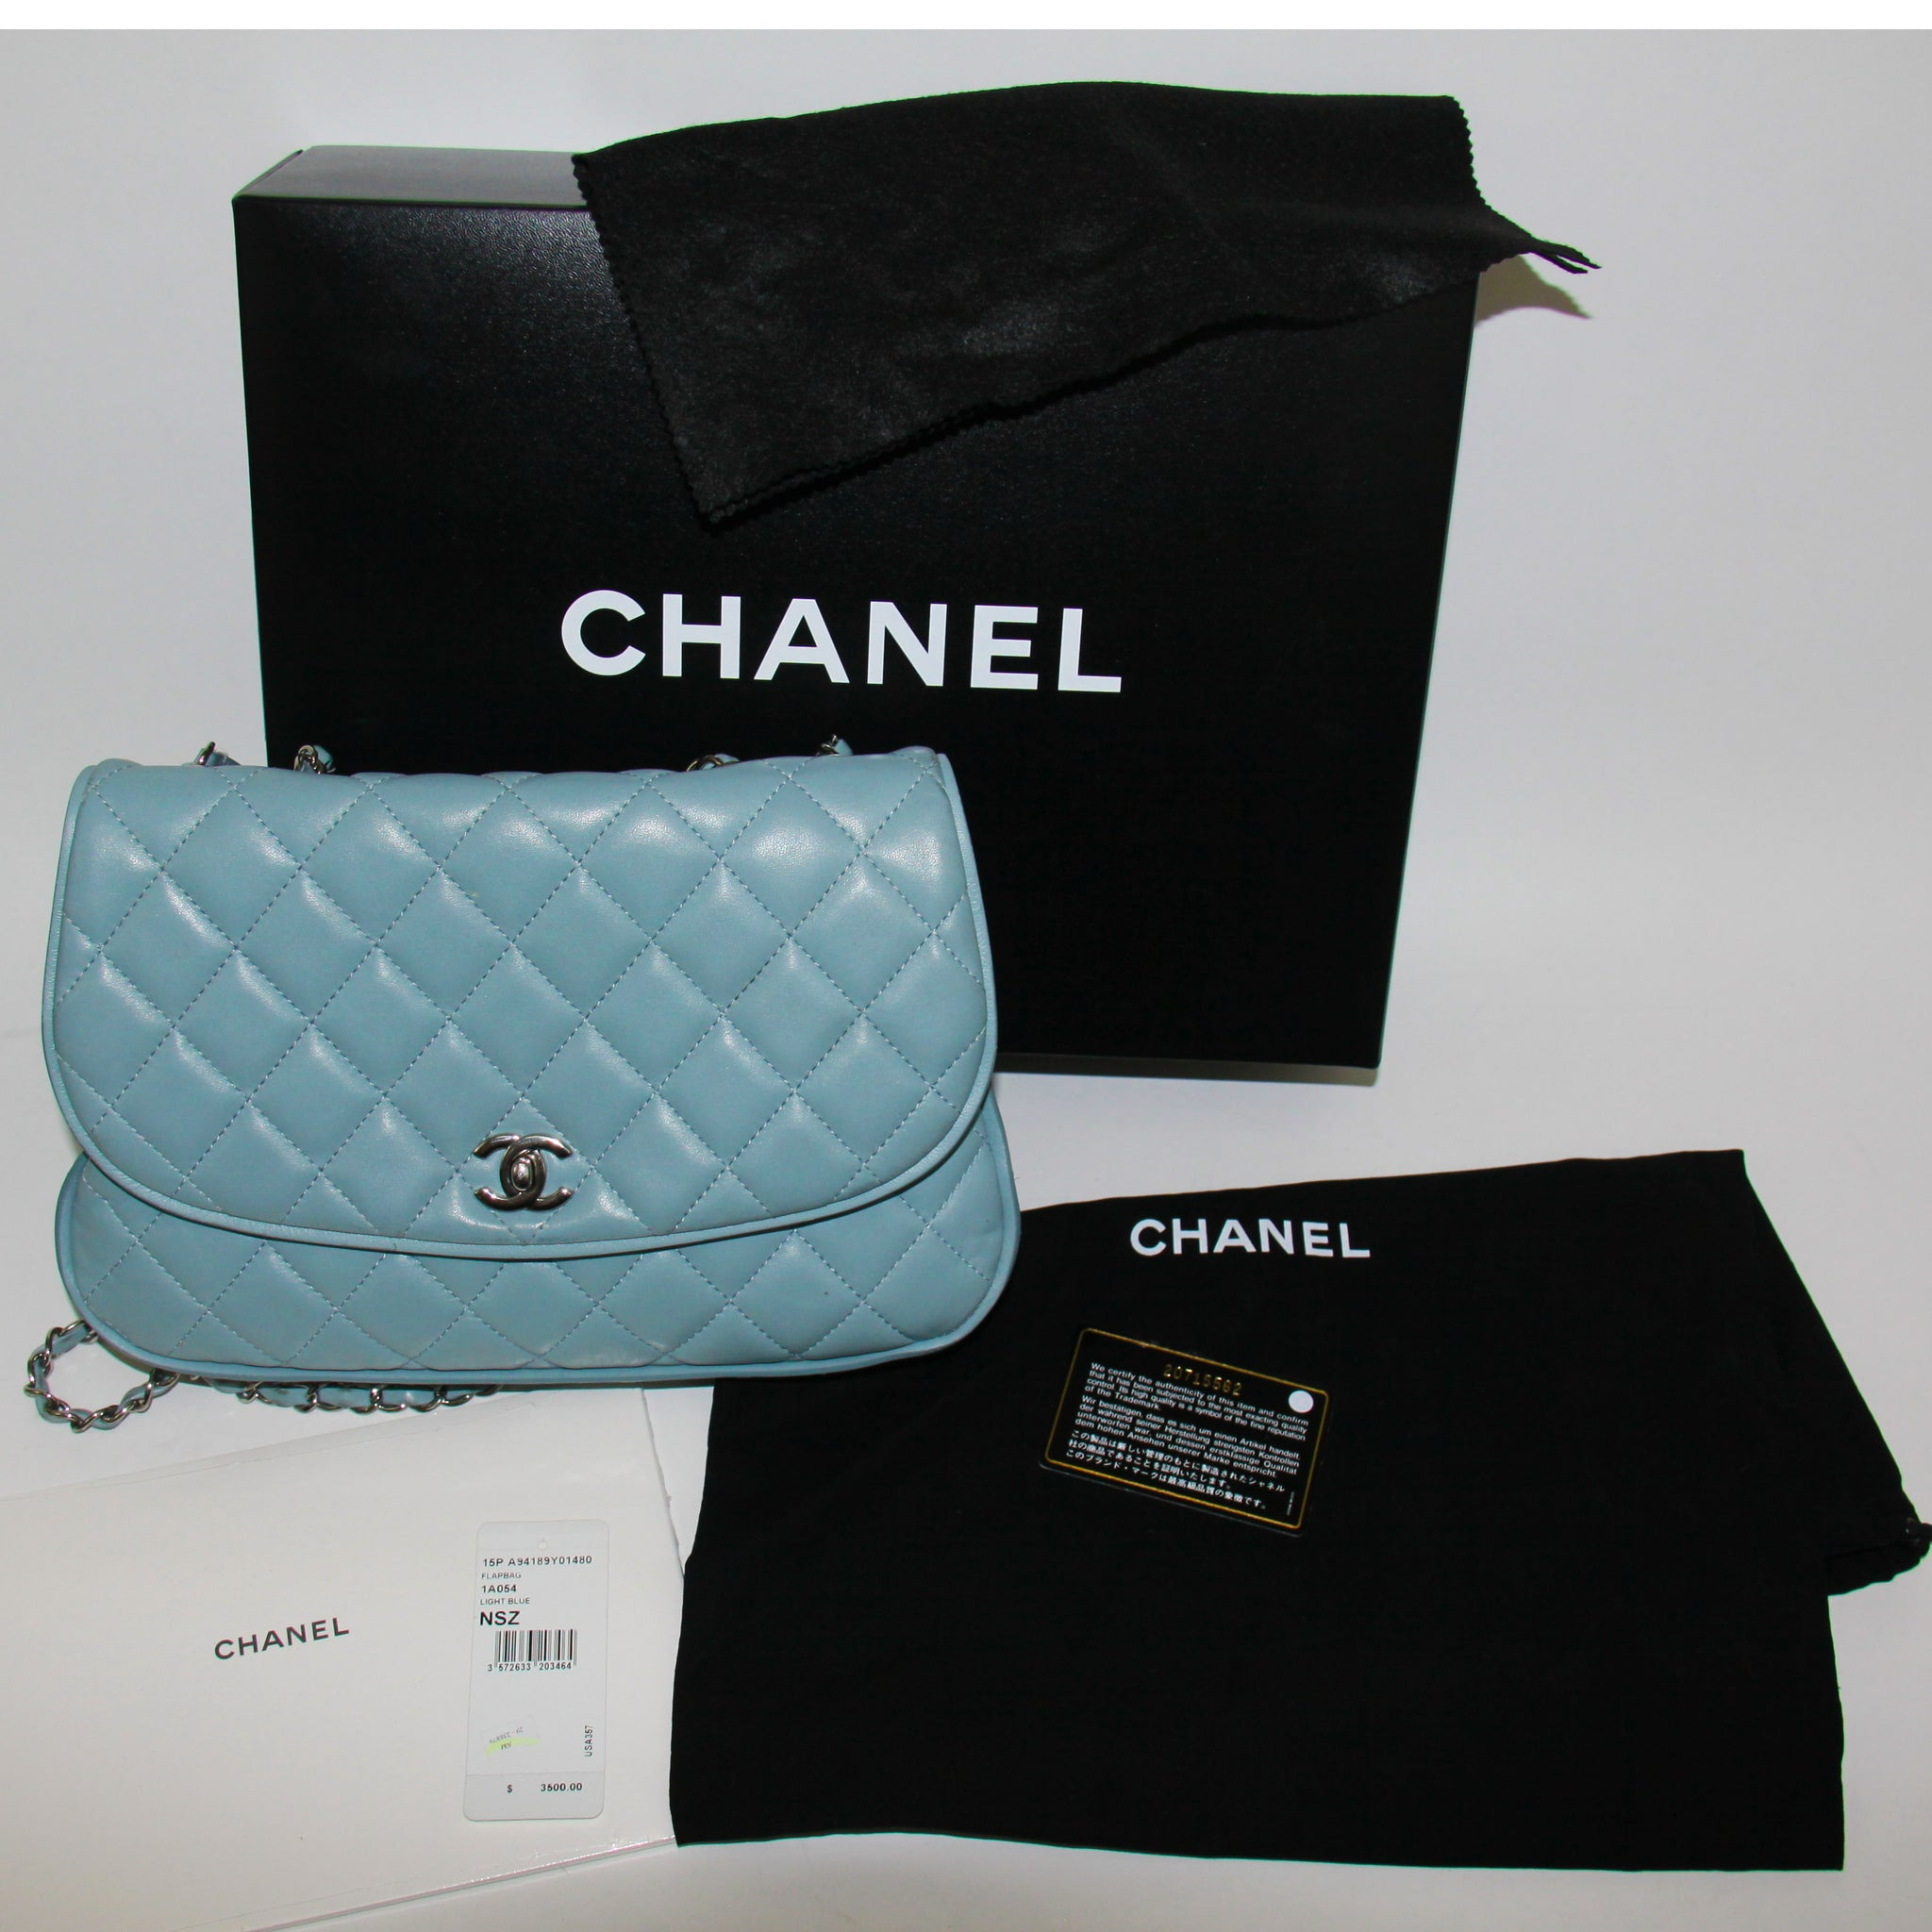 ac832f76fce5 ... Load image into Gallery viewer, Chanel Light Blue Quilted Messenger  Flap Bag 2015 ...